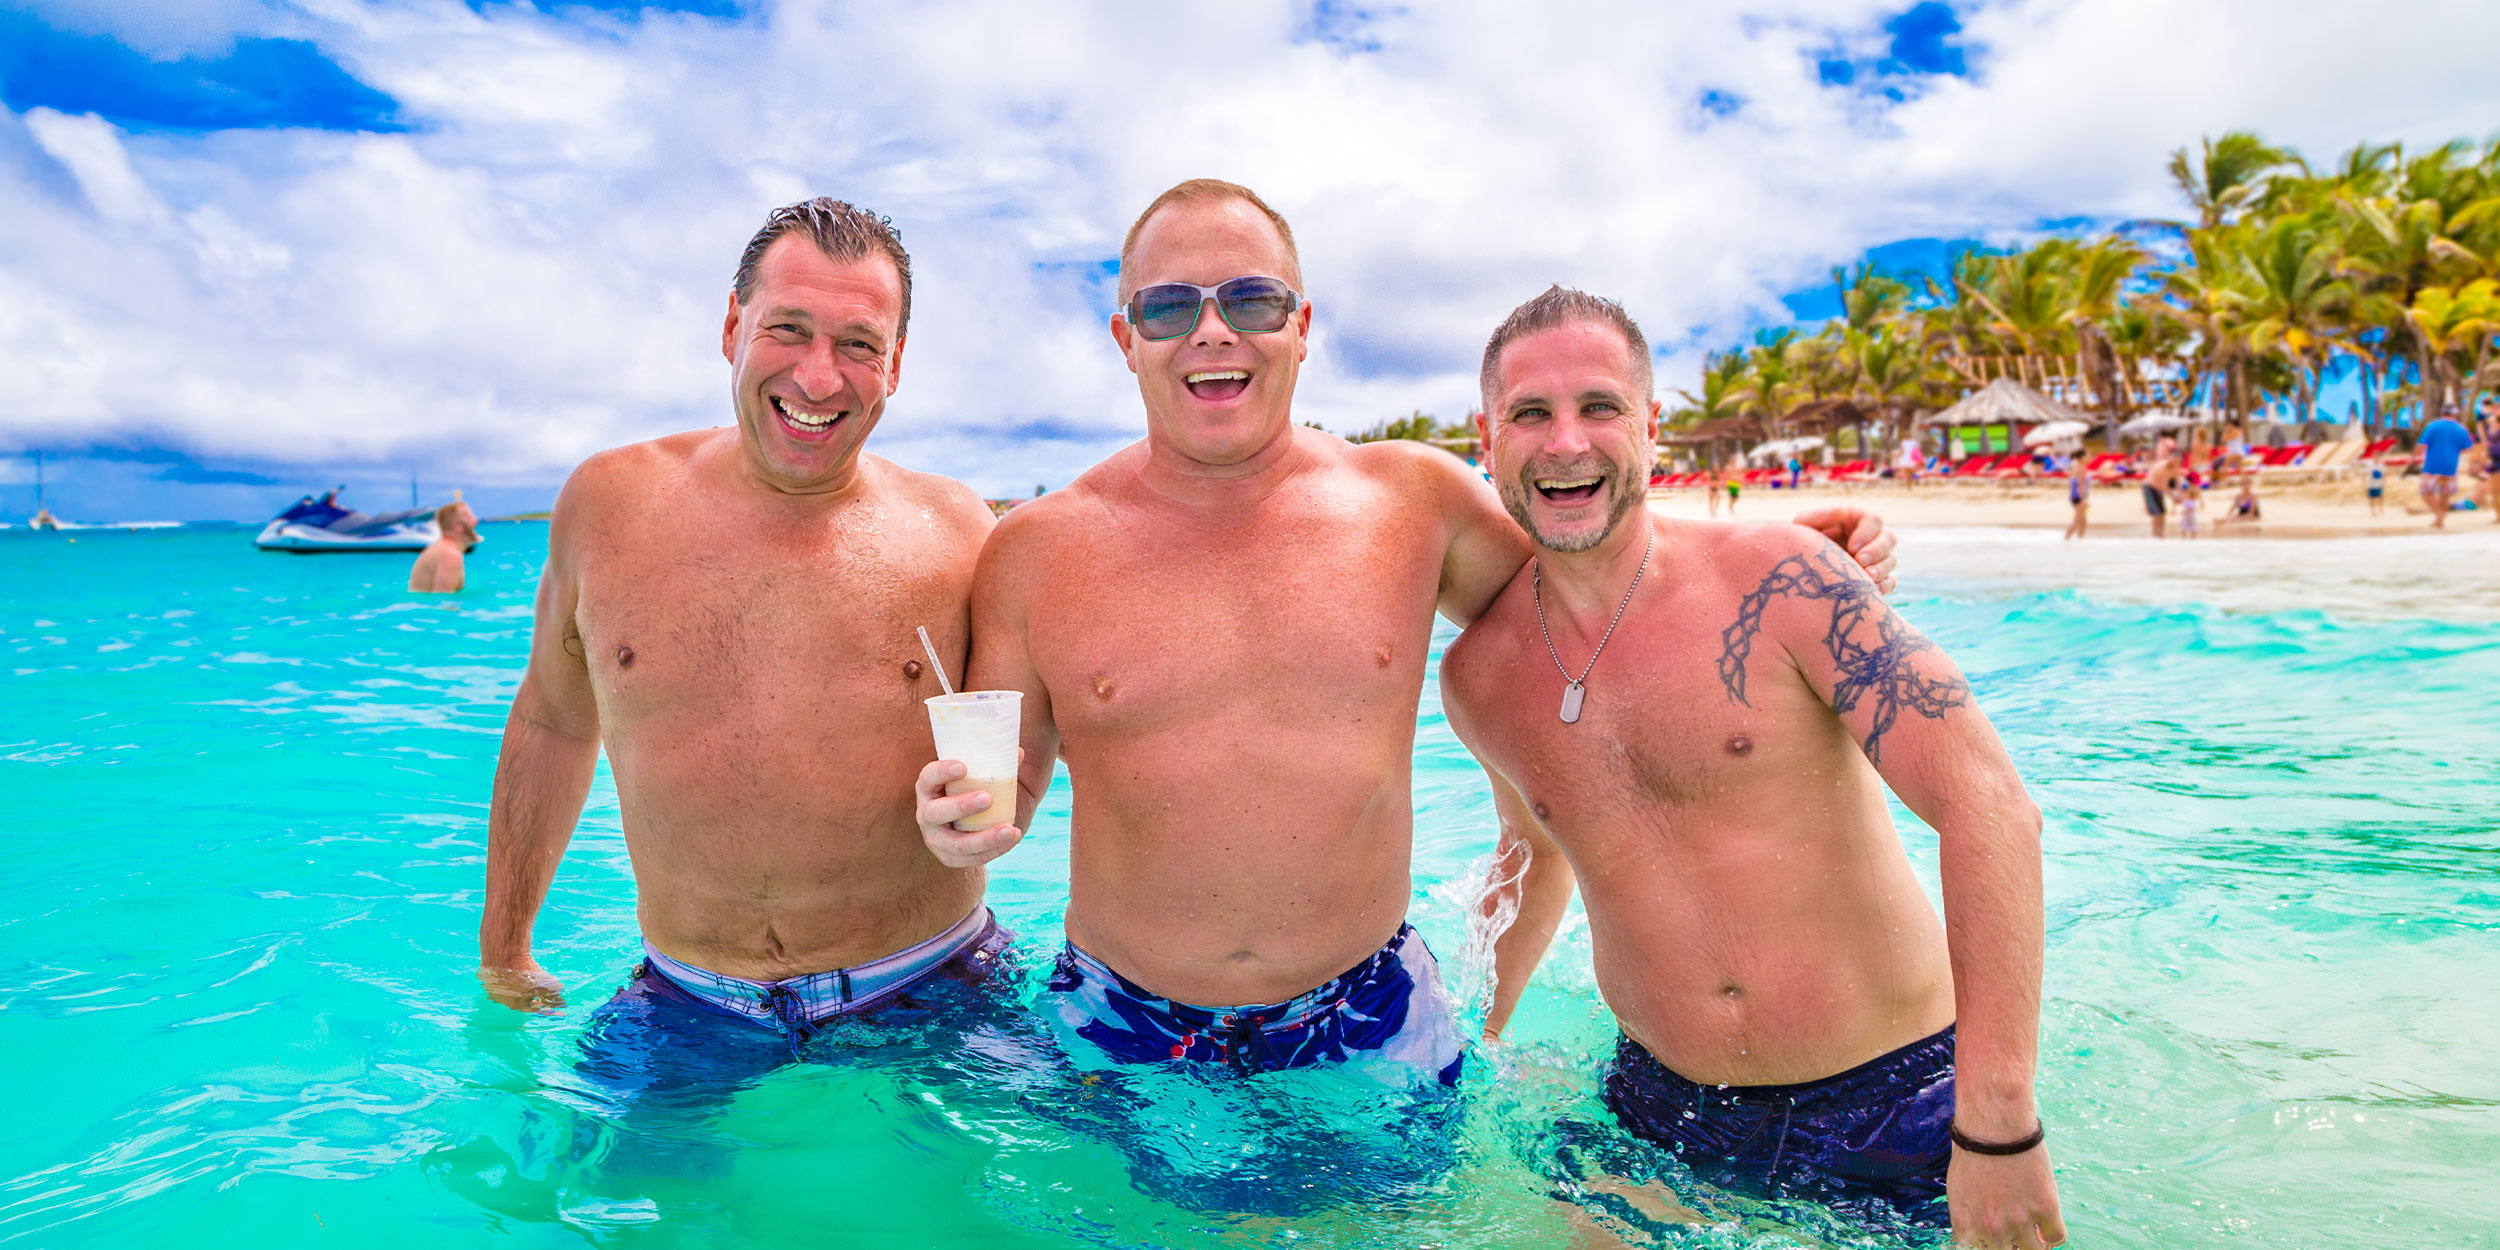 three men having fun laughing in the ocean